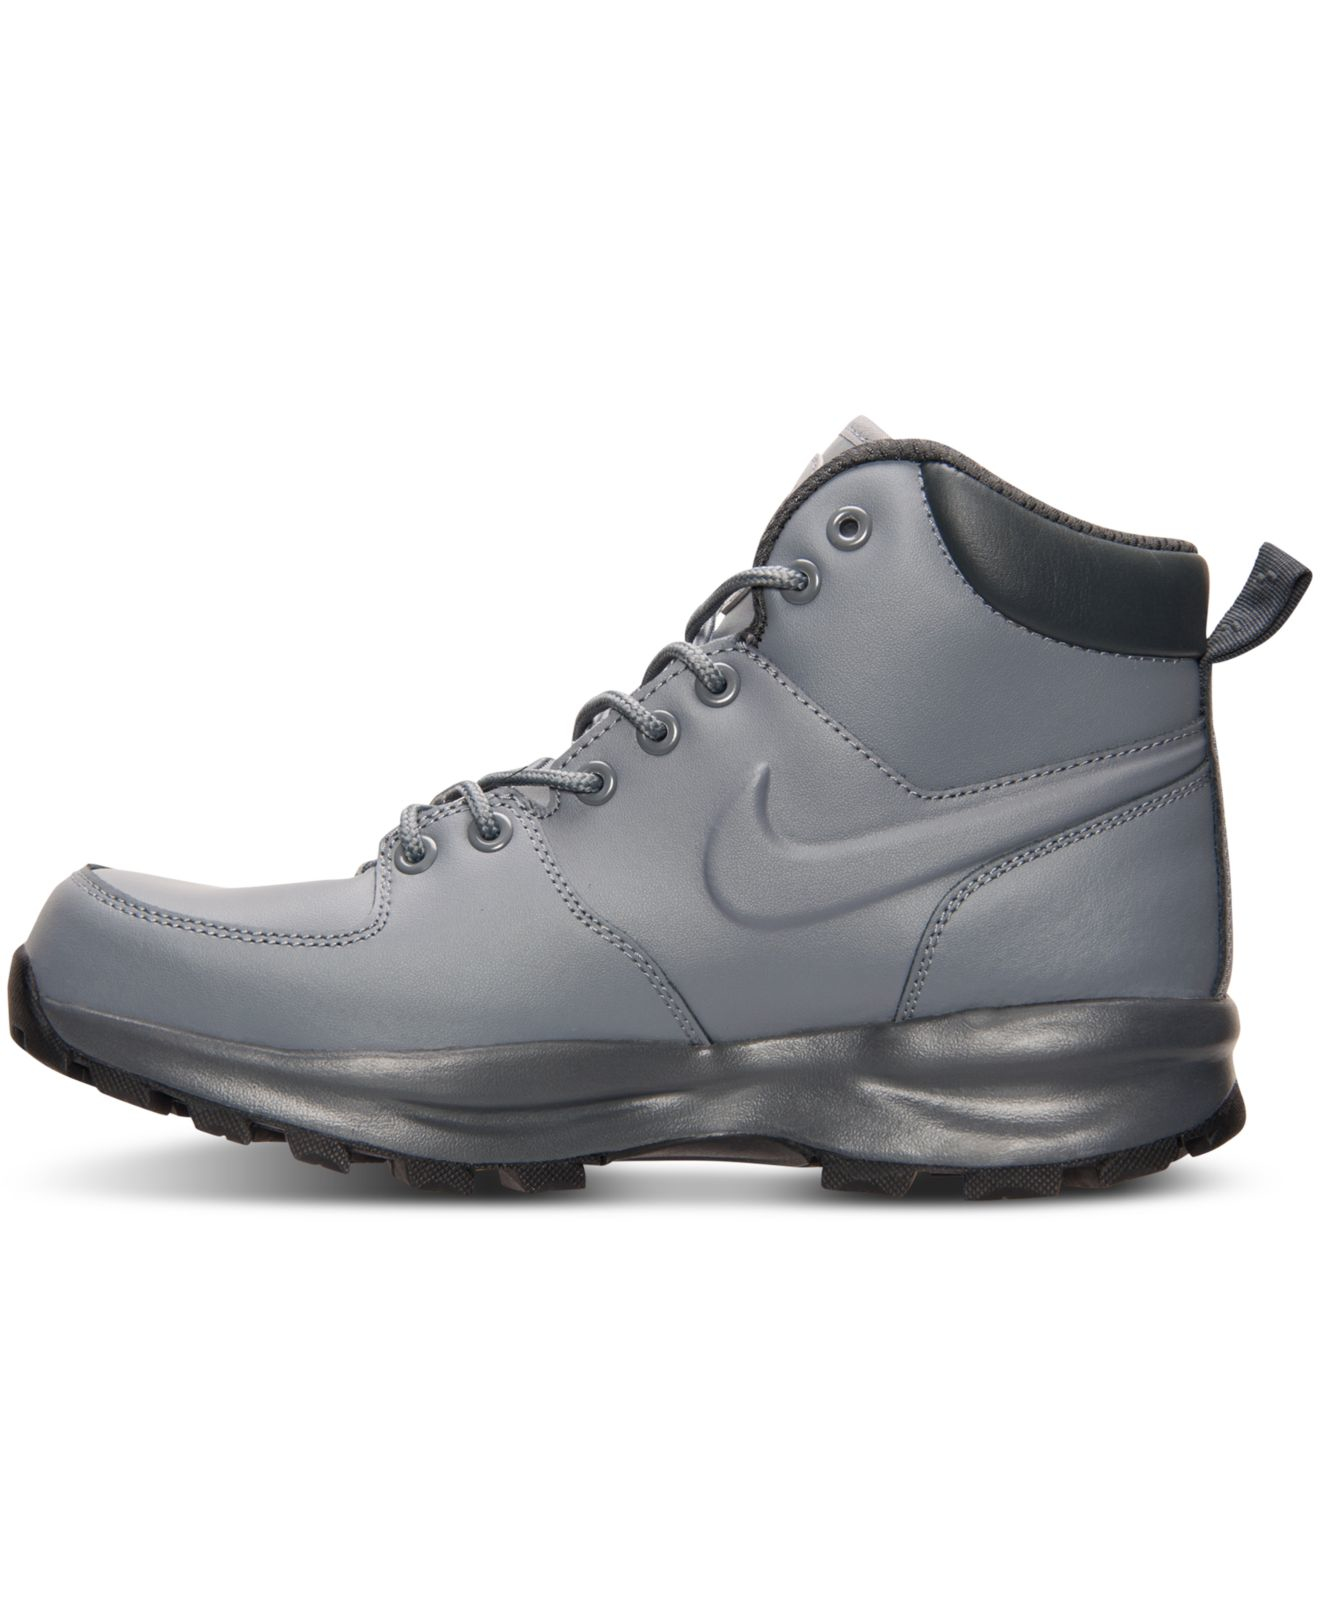 3e3458b252e switzerland amazon nike mens air max goaterra 2.0 acg boots fashion  sneakers 426d0 22186  norway nike basketball nike shoes at finish line. nike  basketball ...